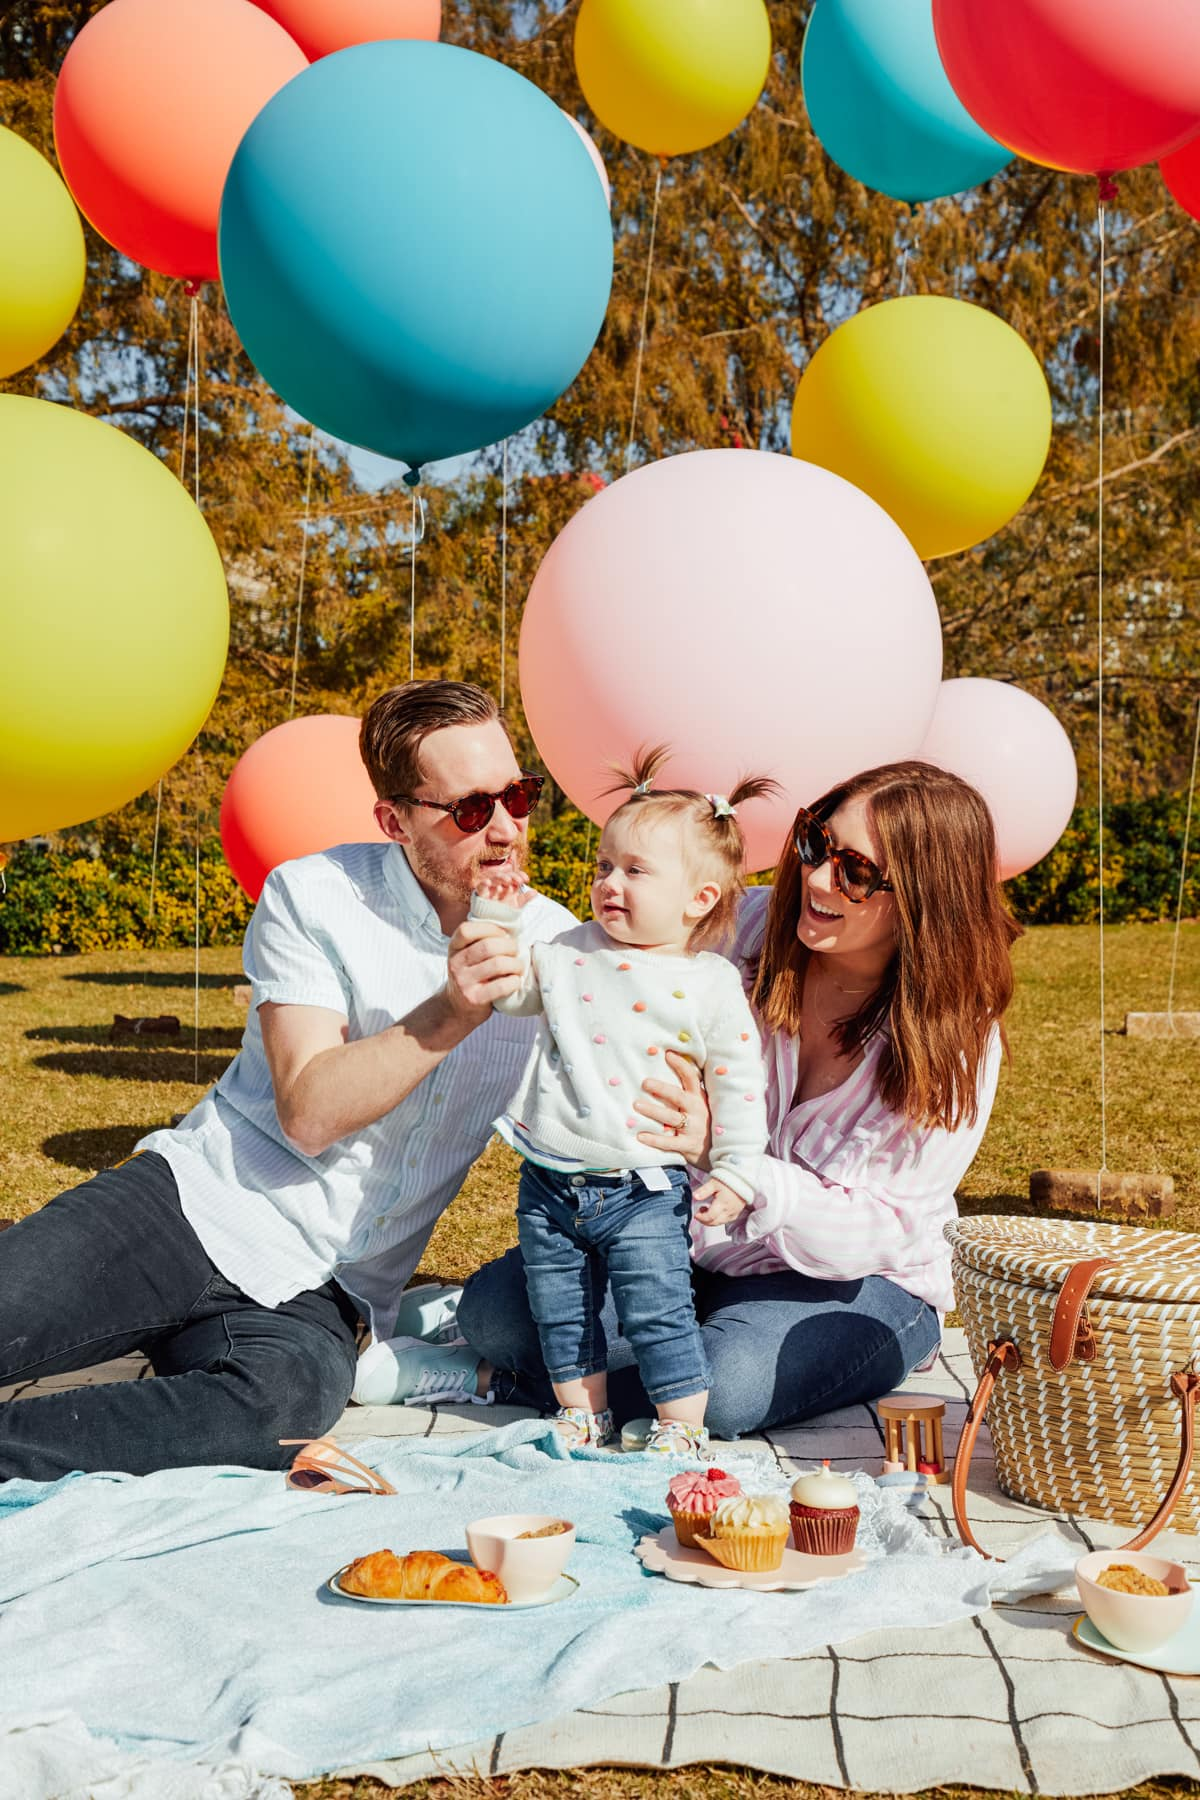 Family picnic ideas - Things I Didn't Know About Basic Financial Planning + Insurance Until Having A Family by top Houston lifestyle blogger Ashley Rose of Sugar & Cloth - #family #budget #budgeting #tips #planning #finances #financial #insurance #help #guide